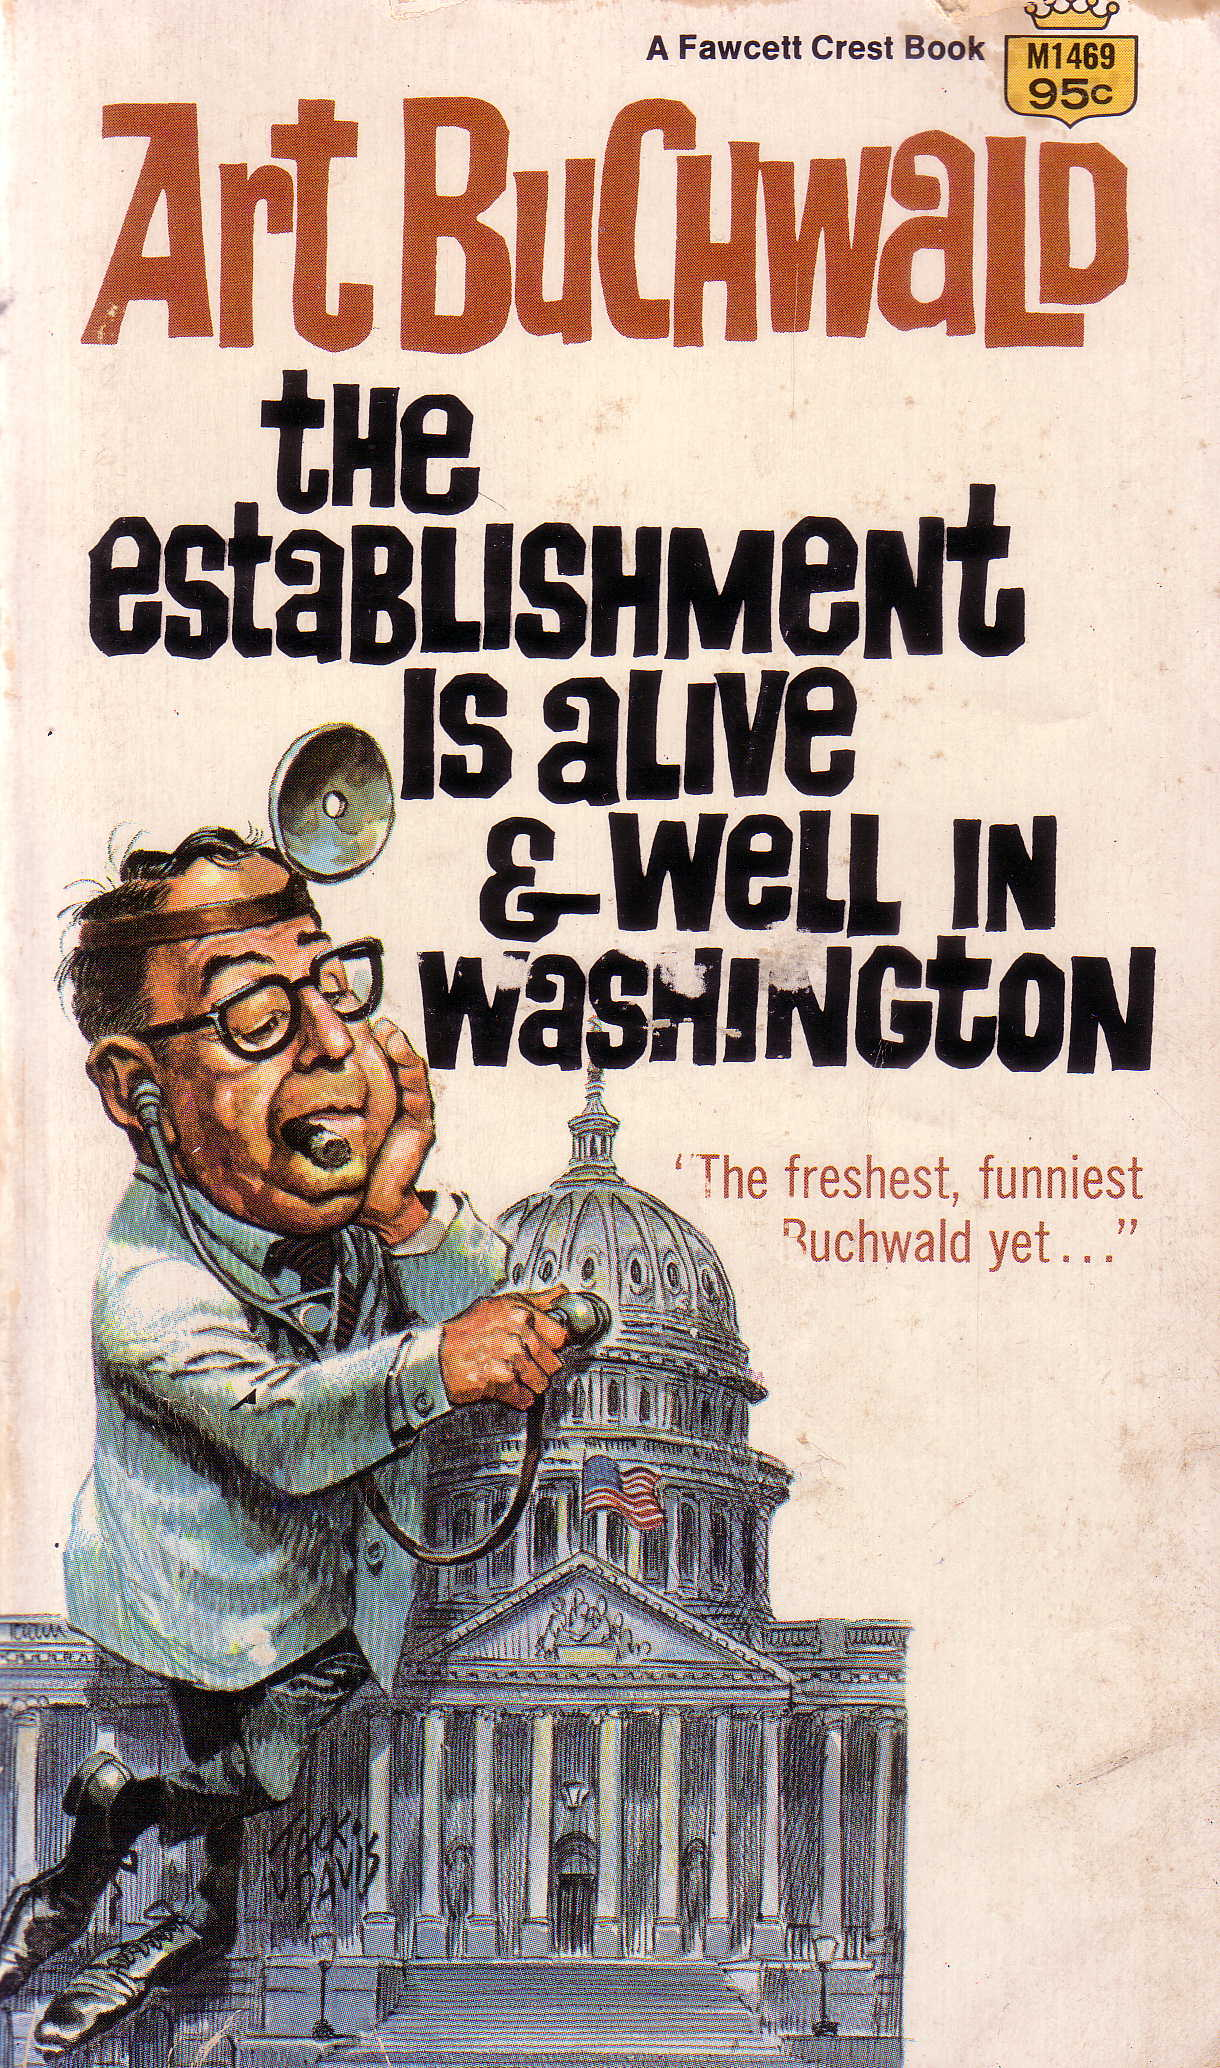 Art Buchwald 'The Establishment' cover